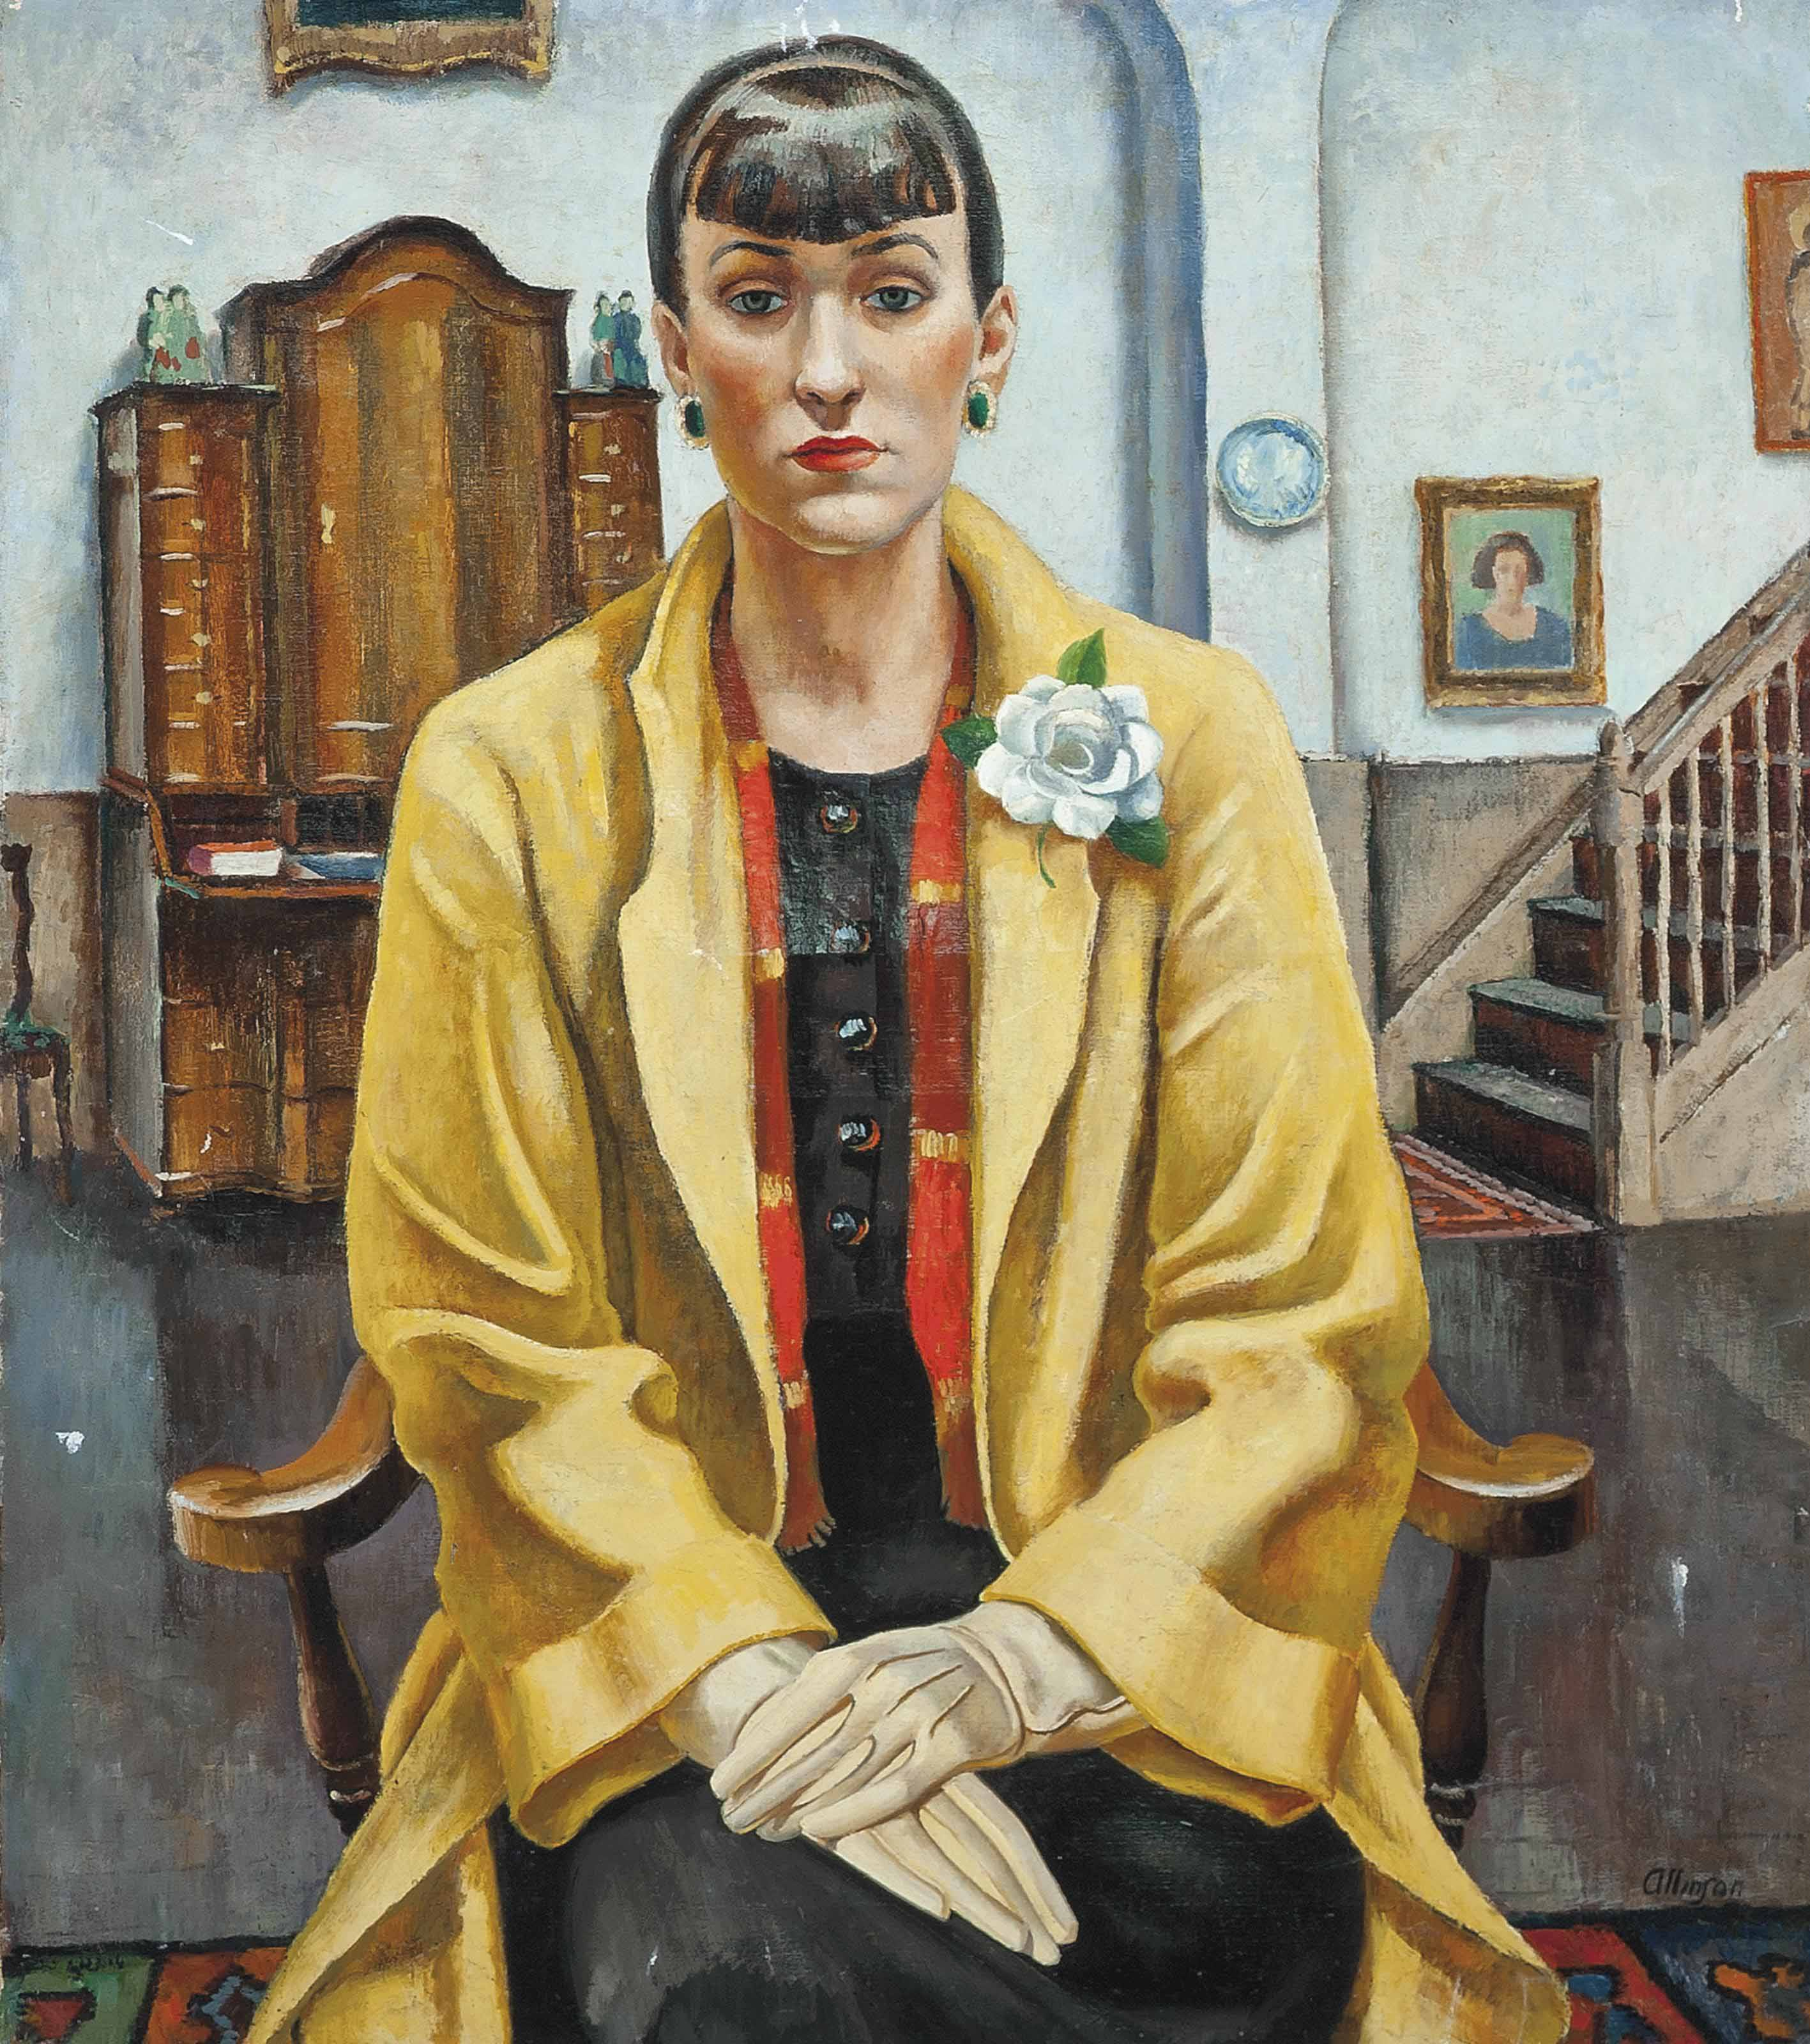 Dorothy in the yellow coat